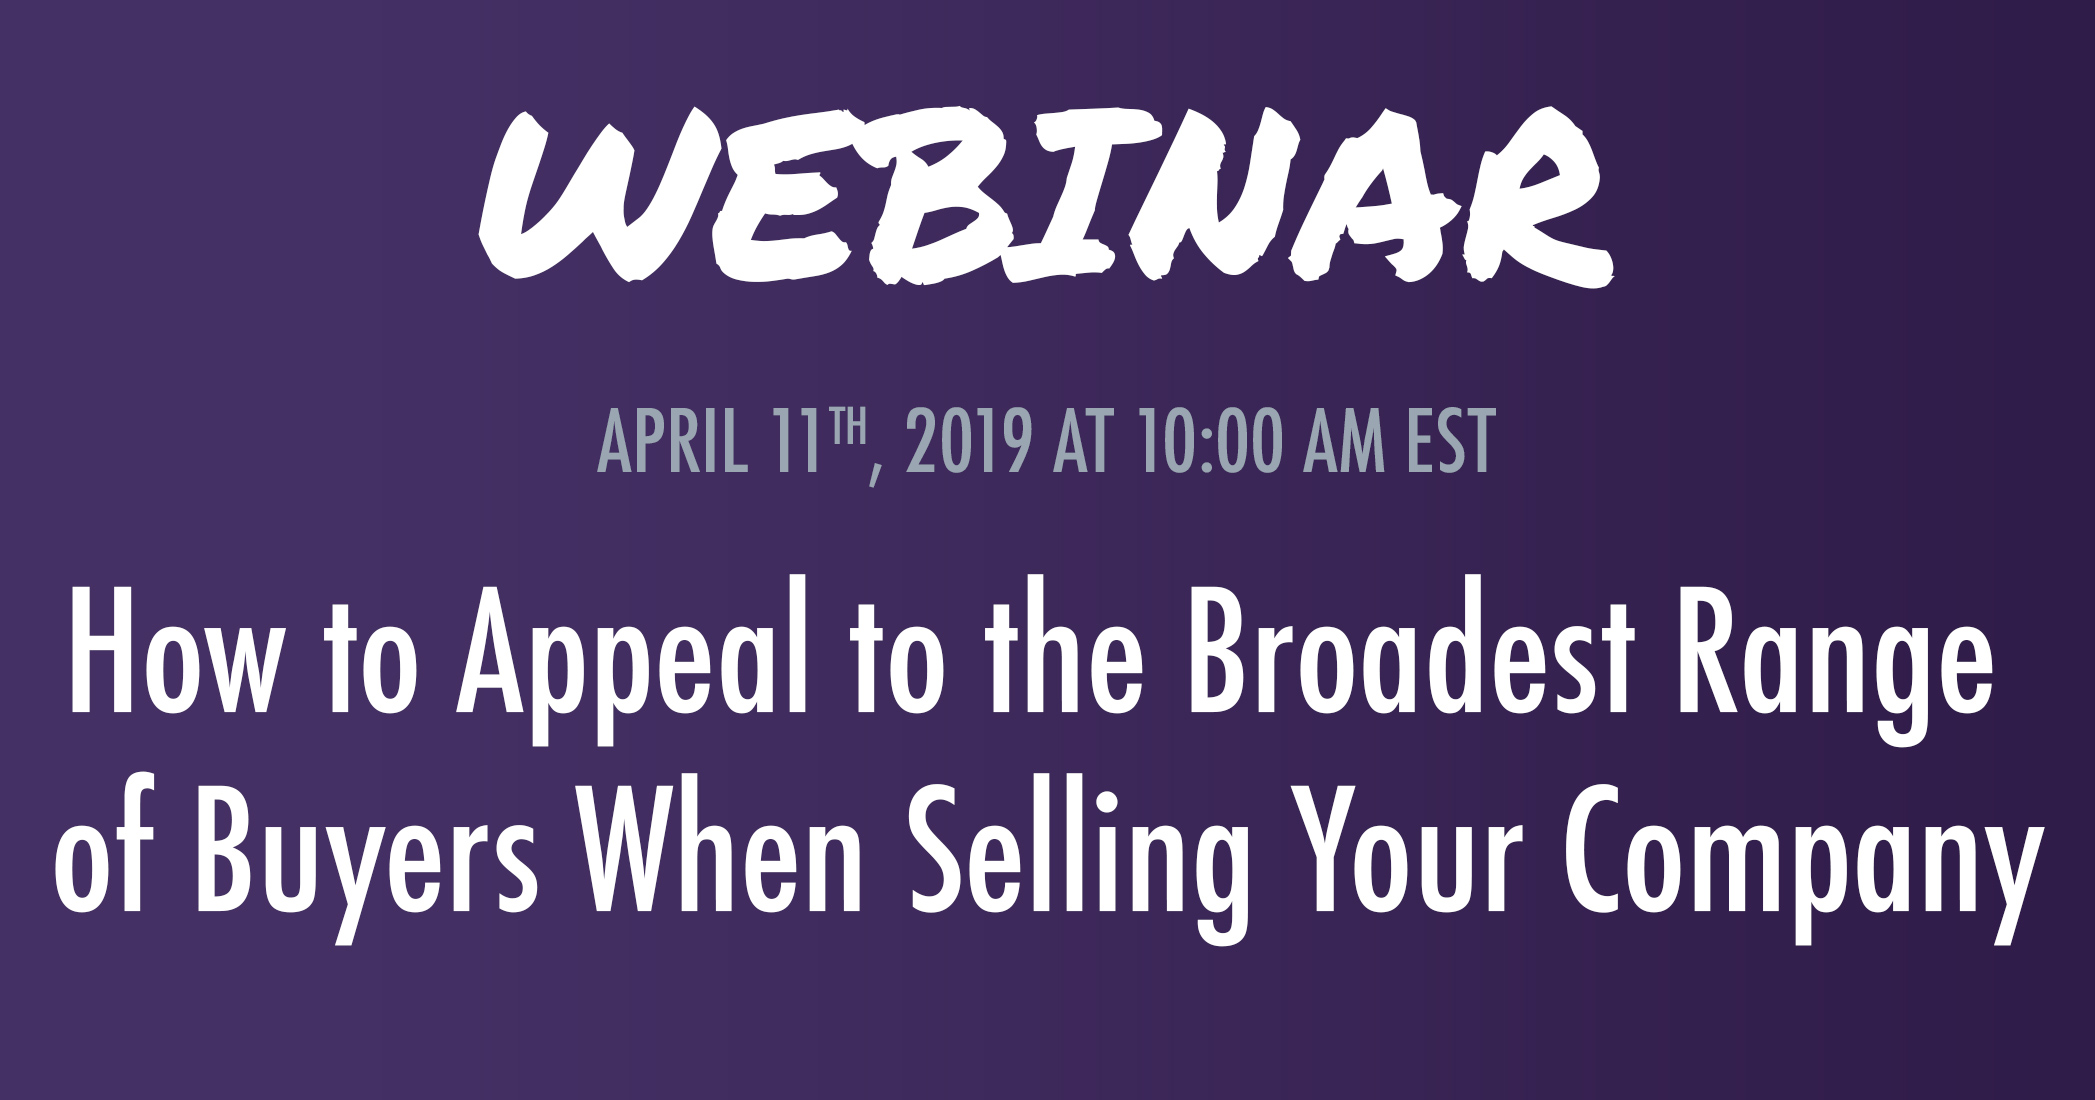 Webinar: How to Appeal to the Broadest Range of Buyers when Selling Your Company